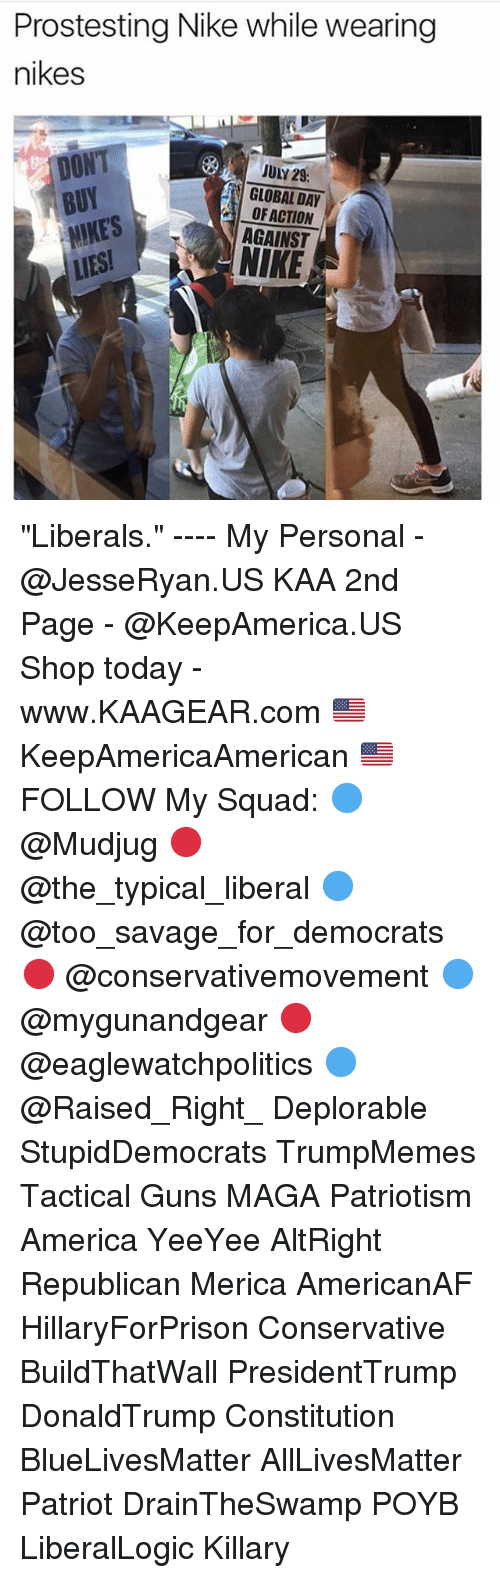 "All Lives Matter, America, and Guns: Prostesting Nike while wearing  nikes  BUY  NIKES  LIES  JULY 29  GLOBAL DAY  OF ACTION  AGAINST  NIKE ""Liberals."" ---- My Personal - @JesseRyan.US KAA 2nd Page - @KeepAmerica.US Shop today - www.KAAGEAR.com 🇺🇸 KeepAmericaAmerican 🇺🇸 FOLLOW My Squad: 🔵 @Mudjug 🔴 @the_typical_liberal 🔵 @too_savage_for_democrats 🔴 @conservativemovement 🔵 @mygunandgear 🔴 @eaglewatchpolitics 🔵 @Raised_Right_ Deplorable StupidDemocrats TrumpMemes Tactical Guns MAGA Patriotism America YeeYee AltRight Republican Merica AmericanAF HillaryForPrison Conservative BuildThatWall PresidentTrump DonaldTrump Constitution BlueLivesMatter AllLivesMatter Patriot DrainTheSwamp POYB LiberalLogic Killary"